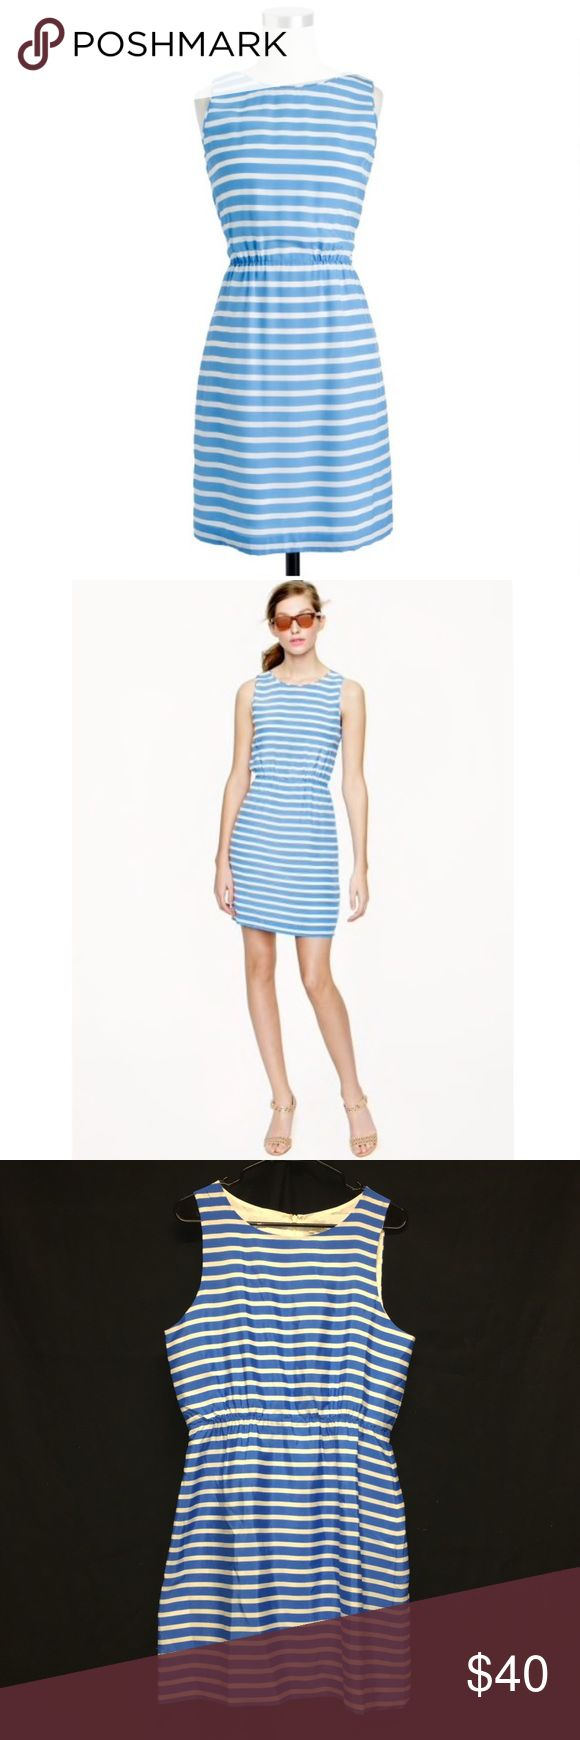 "J. Crew Dree Dress in blue & white stripes A chic shift dress fashioned with a gathered elastic waist (so it fits as effortlessly as it looks) is sweet and simplistic in luxe silk. Nautical stripes cast a summery feel. Straight silhouette with hidden centered back zip. Silk.  Elastic at waist. Fully lined. All measurements are approximate & lay flat:   ~ Length: 36""   ~ Bust: 19""   ~ Waist: 15"" Color may vary due to camera lightings and different computer screens J. Crew Factory Dresses"